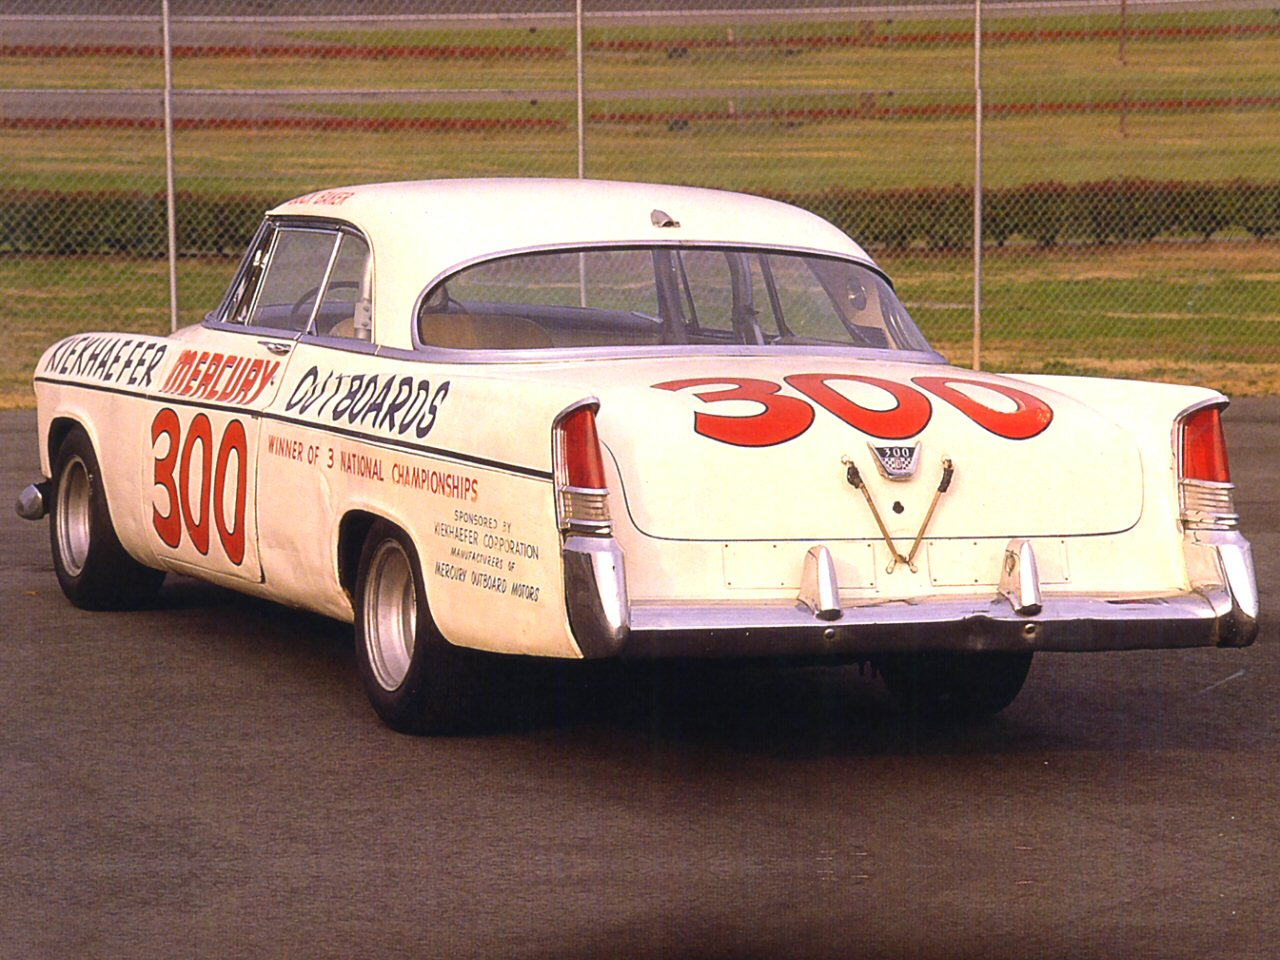 1956 Chrysler 300B NASCAR Race Car Cream Rvl